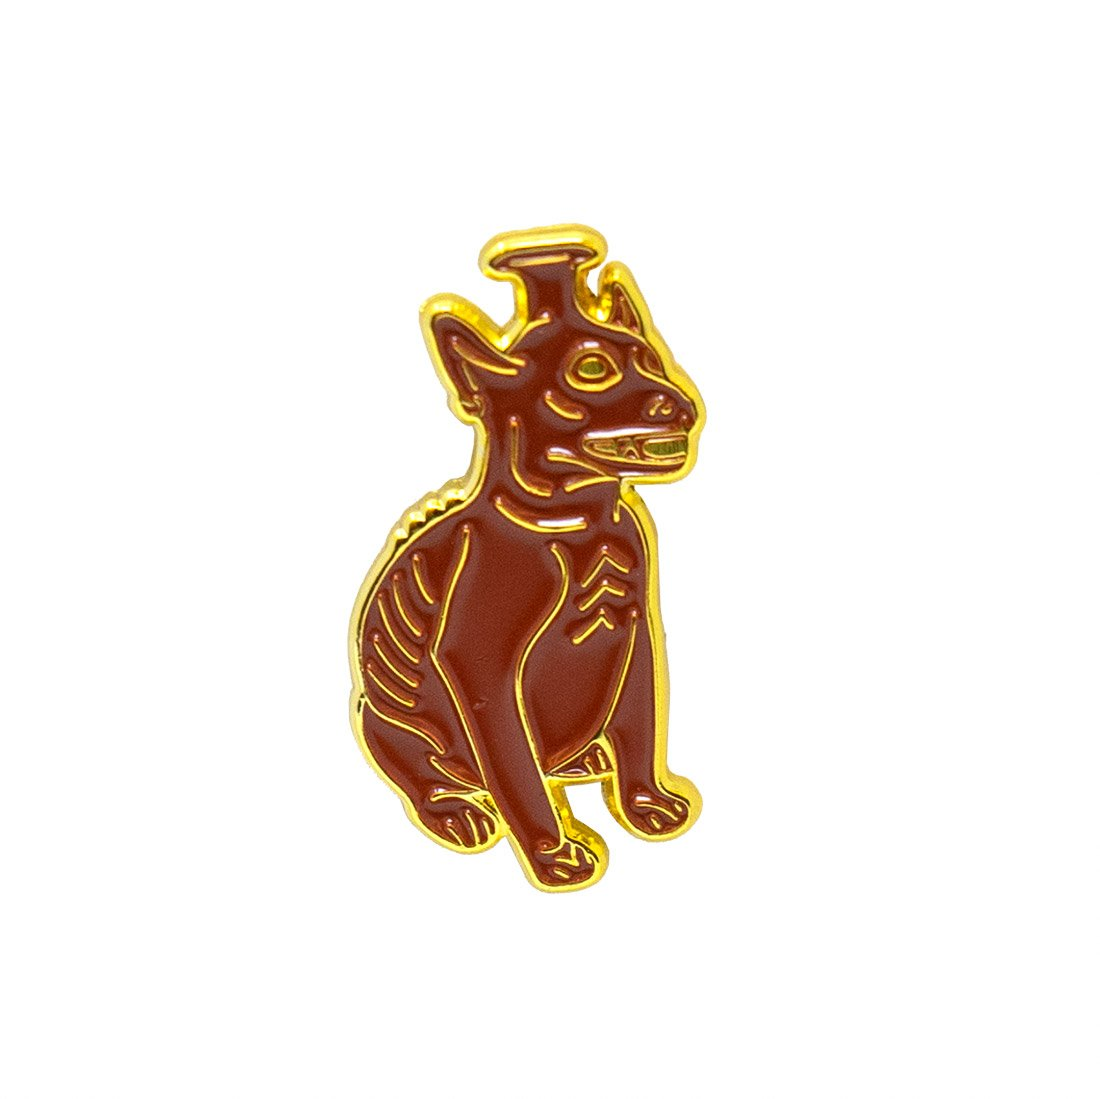 Seated Colima Dog Enamel Pin